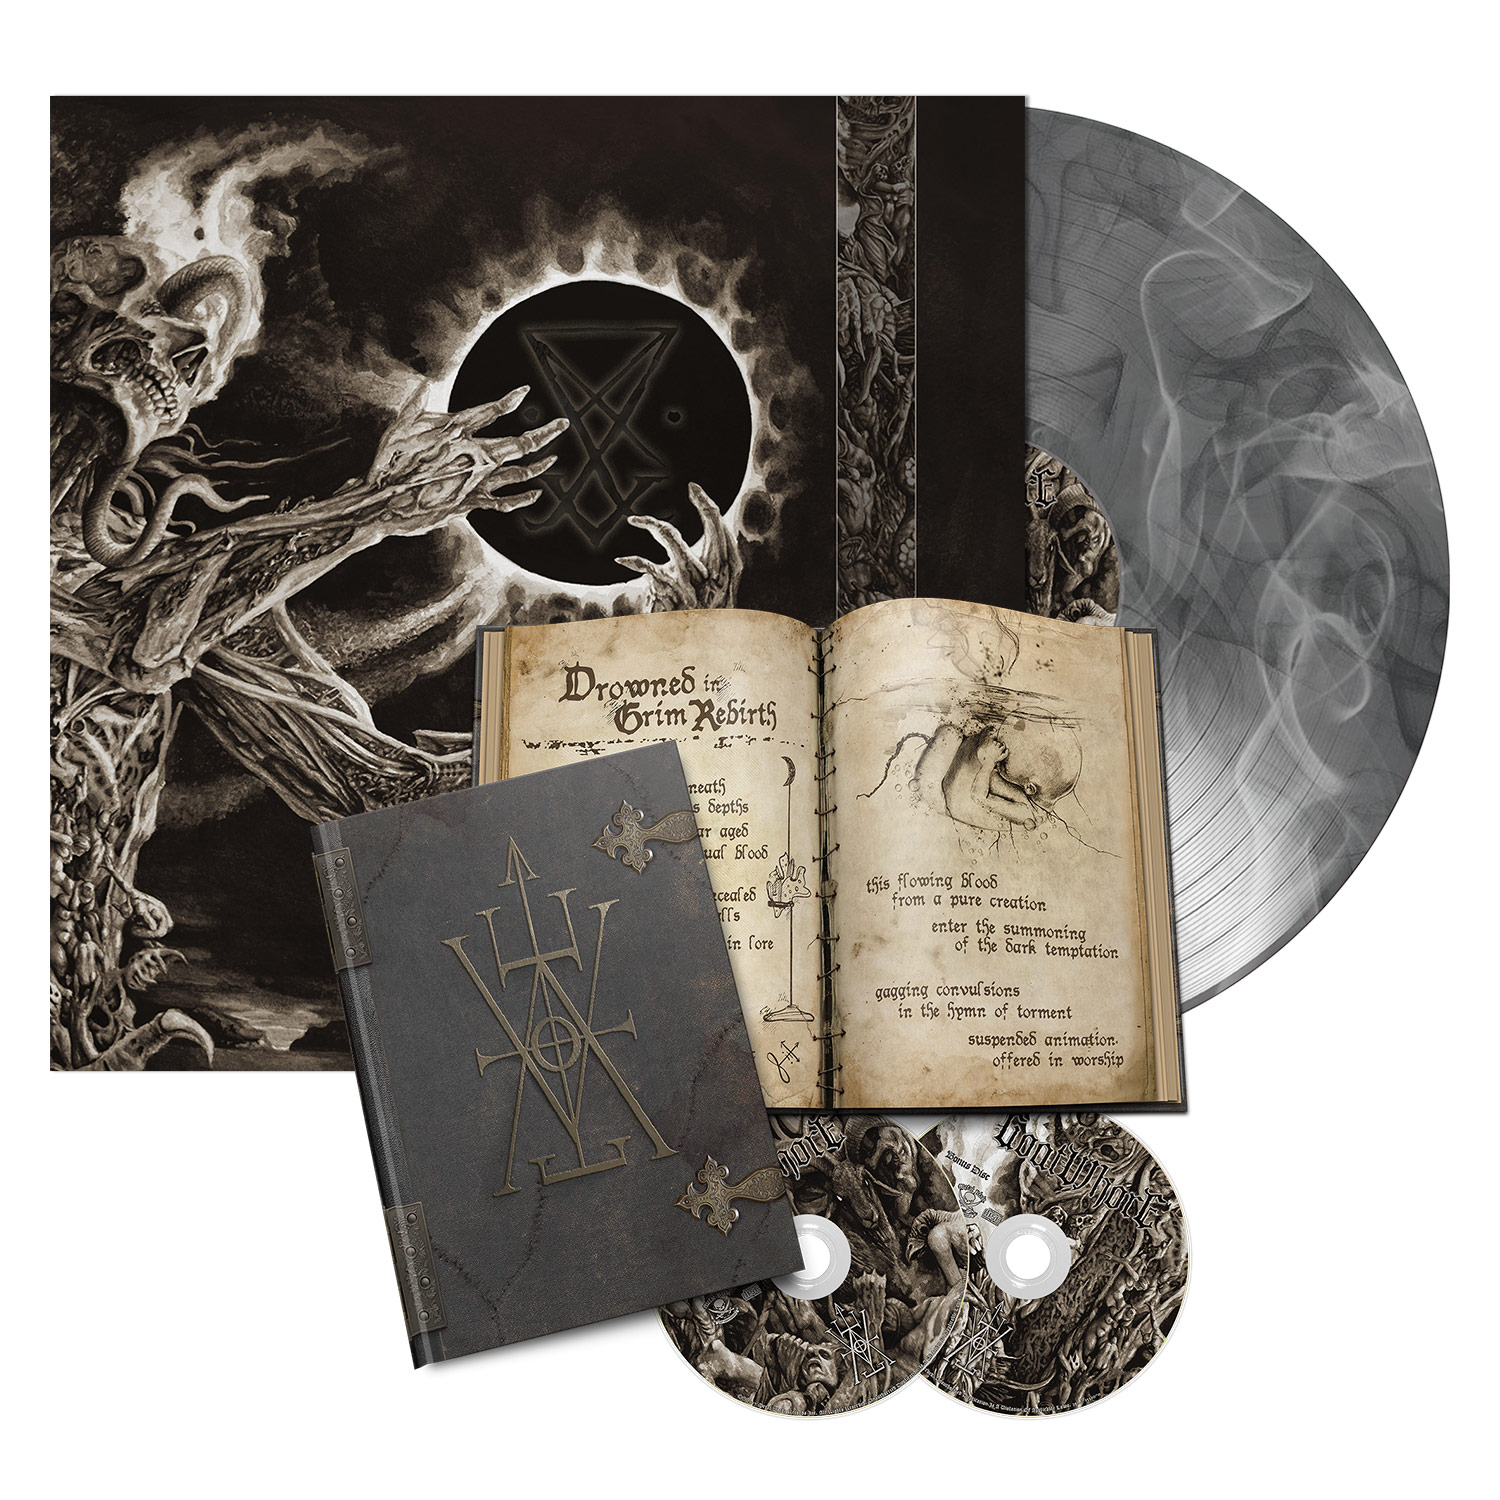 Vengeful Ascension - Spell Book/LP Bundle